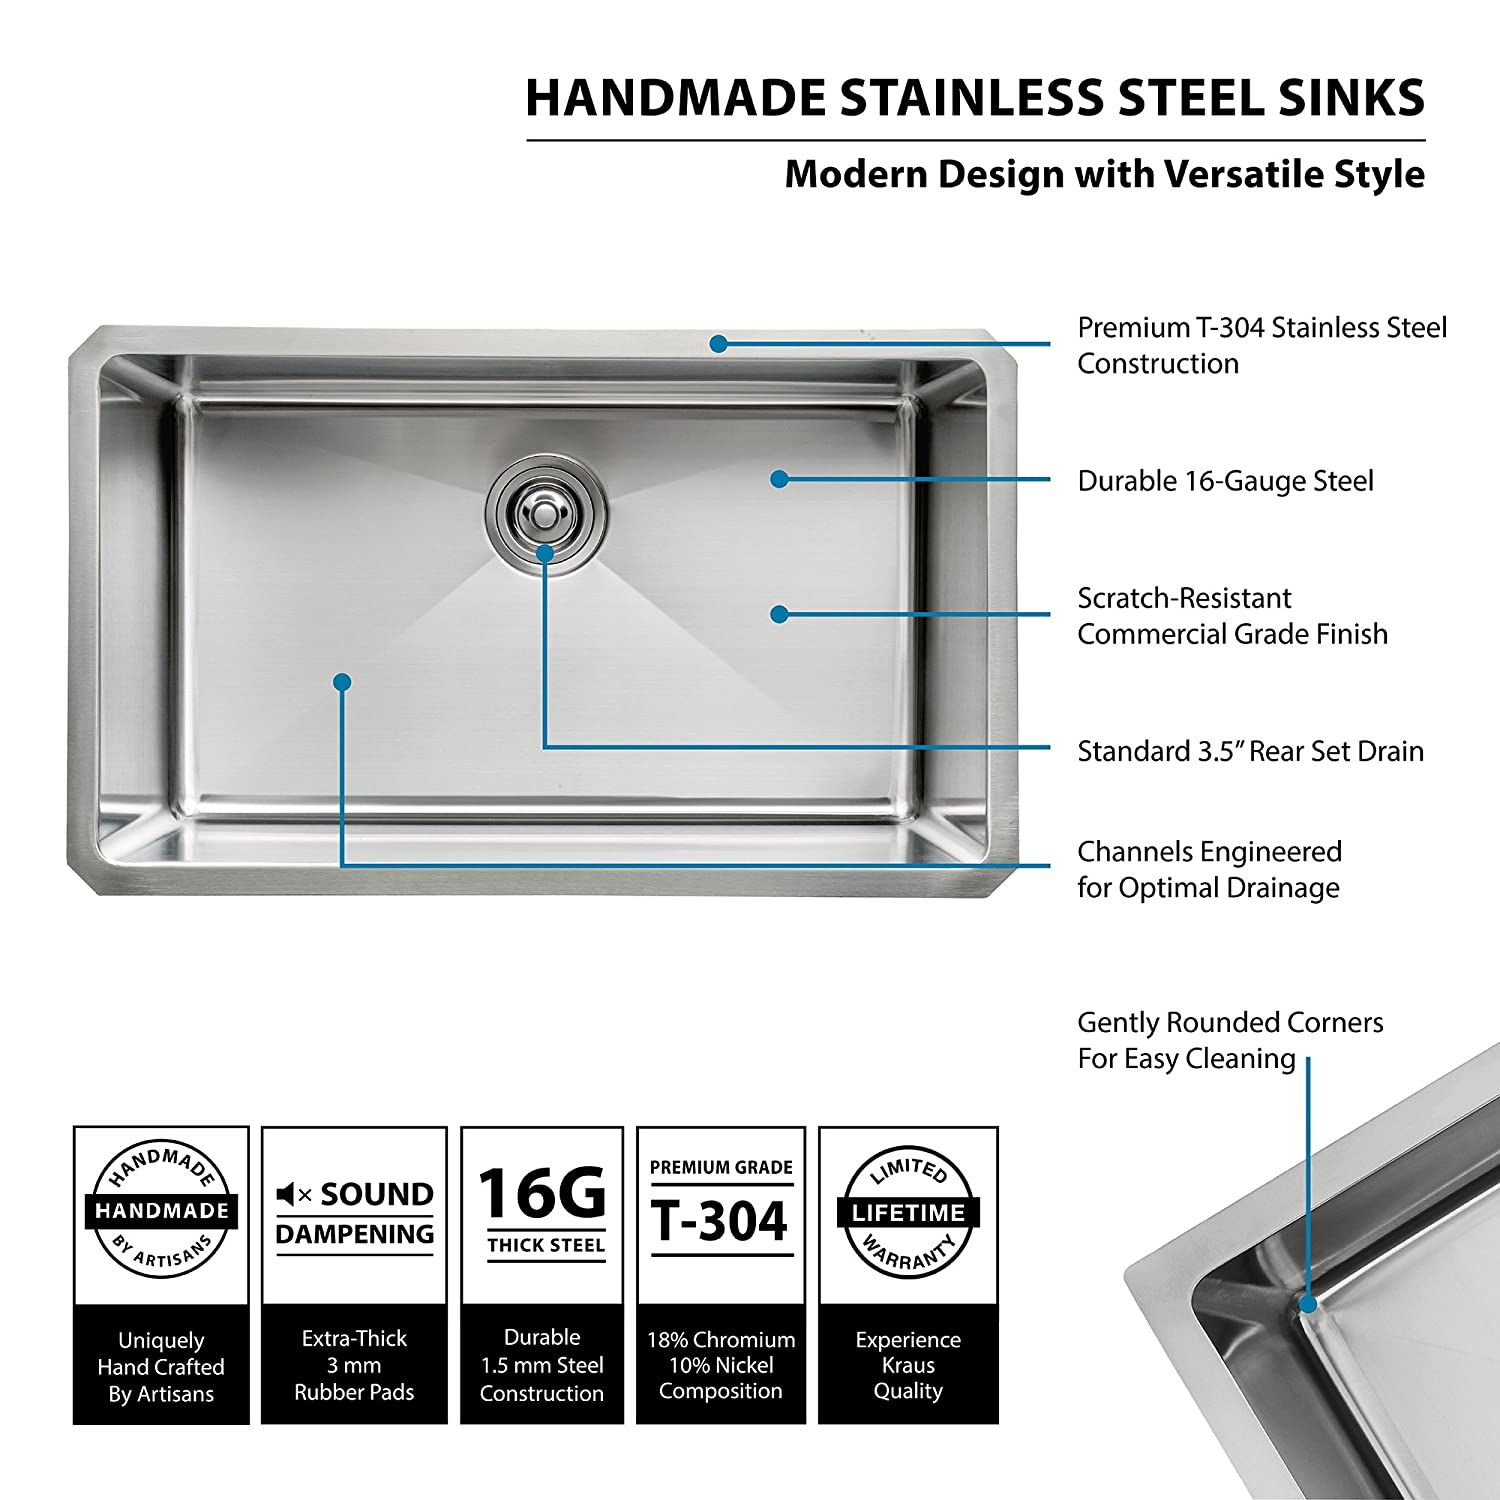 Vessel s c m quality sinks faucets and accessories - Kraus Khu100 30 30 Inch 16 Gauge Undermount Single Bowl Stainless Steel Sink Amazon Com